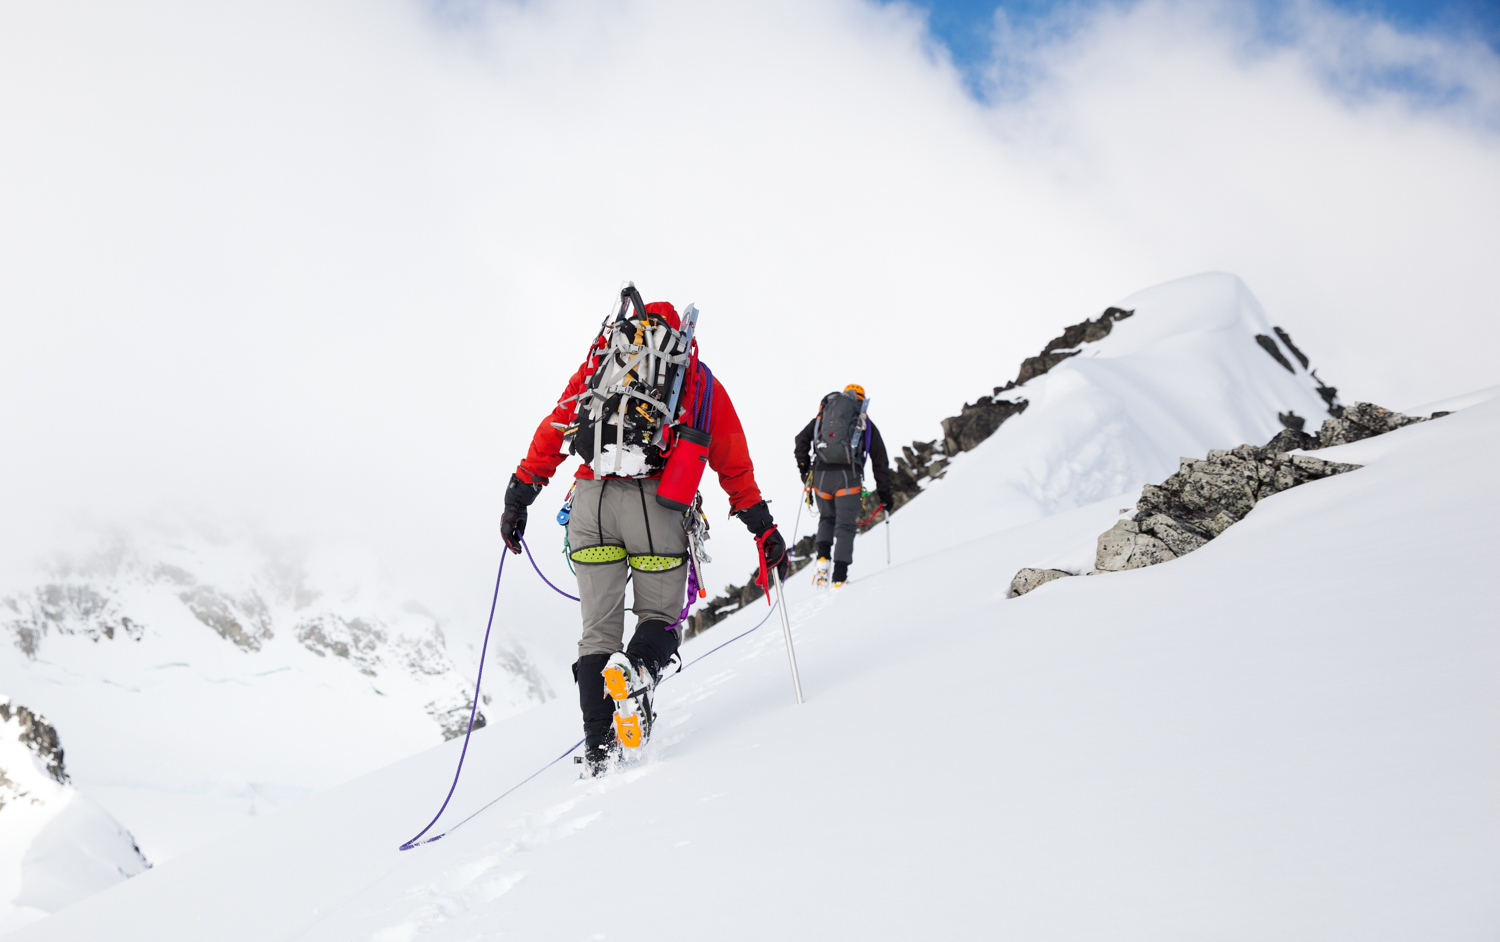 Two mountaineers ascending Wedge Mountain, Canada